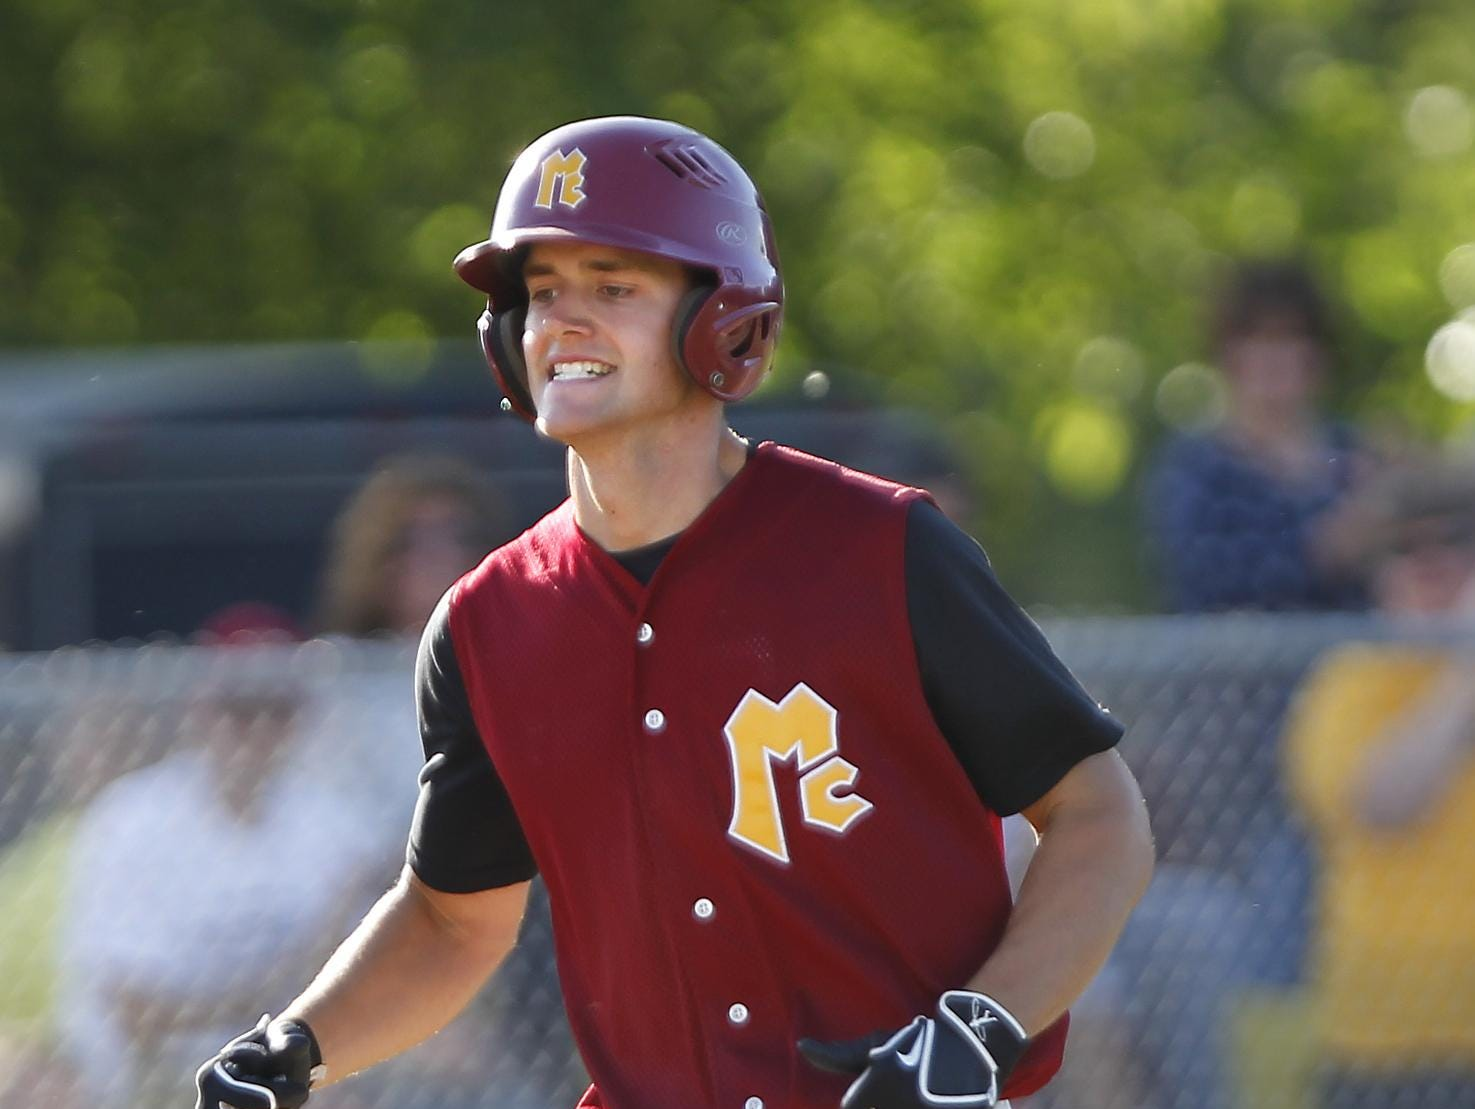 Braden Giroux is the 22nd player in McCutcheon history to be named to the North/South All-Star series.